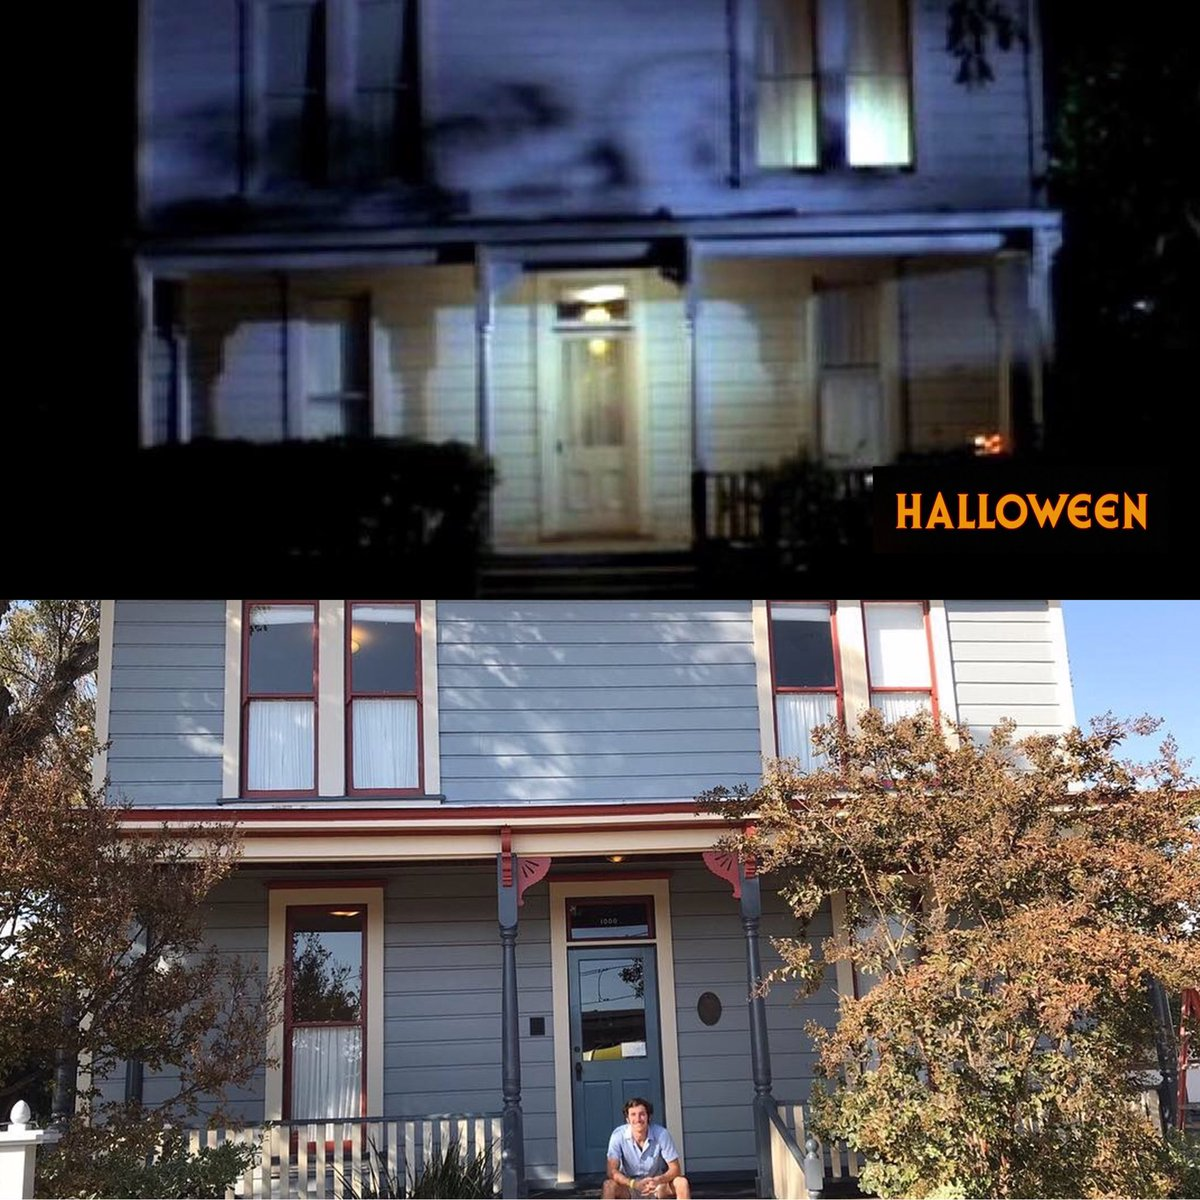 """Fun fact: """"Halloween"""" was originally titled """"The Babysitter Murders"""", which would've happened over multiple days. Due to budgetary reasons, they changed the script to have everything happen on the same day, which was Halloween."""